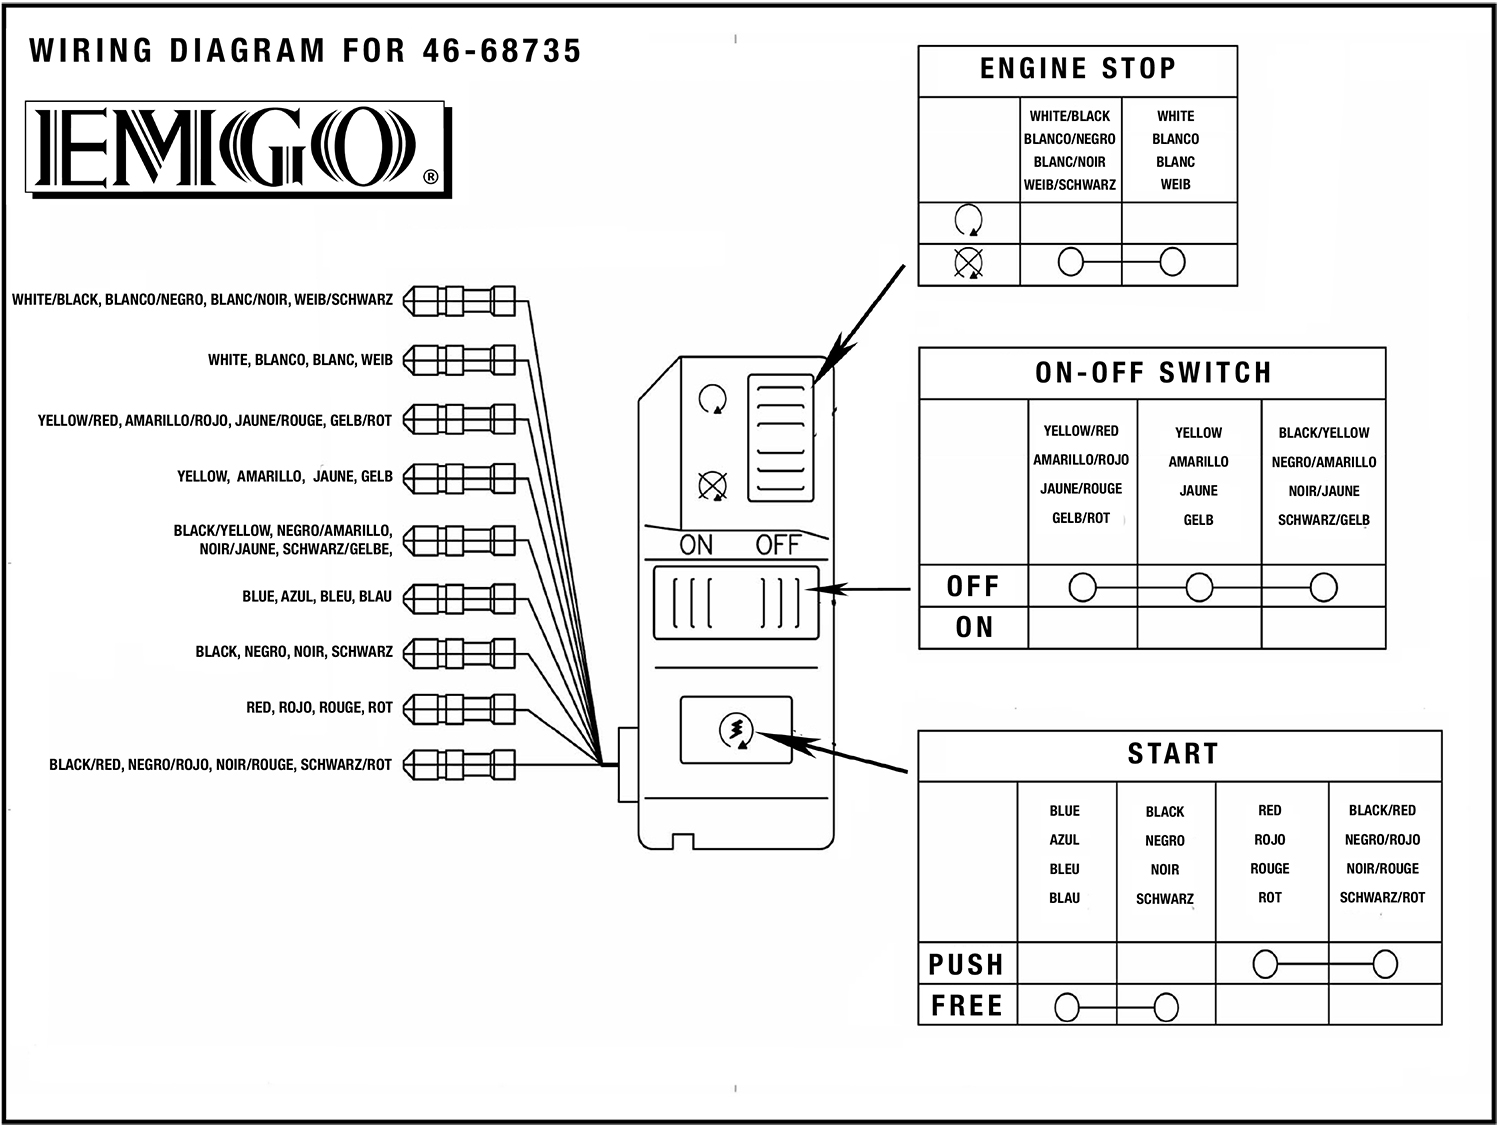 46 68735 wiring diagram emgo universal multi switch handlebar motorcycle dual sport cafe pin out right?t=1490388975 emgo universal handlebar multi switch right 46 68735 wiring emgo coil wire diagram at bayanpartner.co